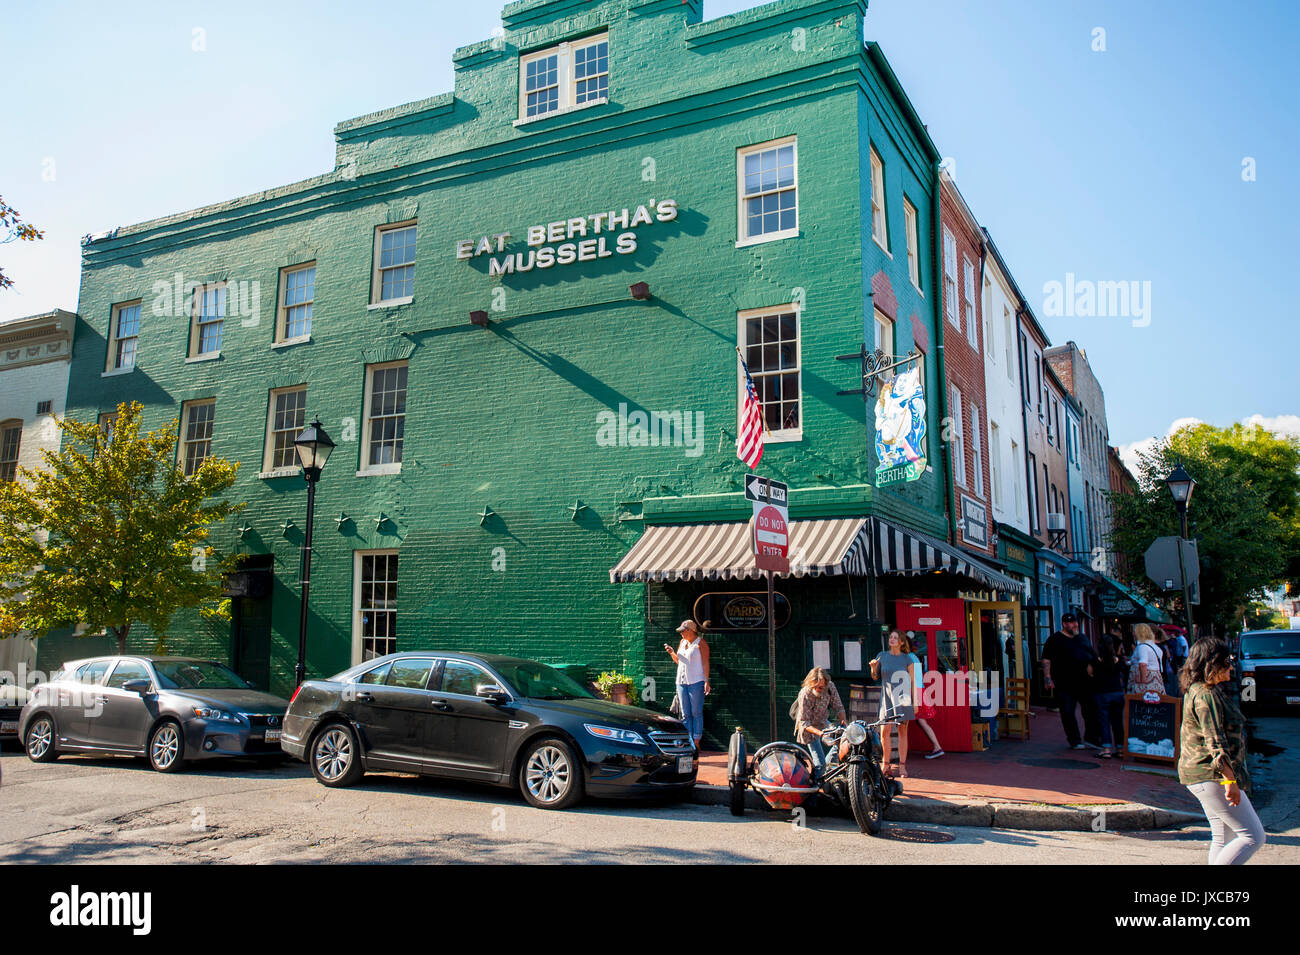 USA Baltimore Maryland MD Fells Point Eat Bertha's Mussels seafood restaurant on Braodway - Stock Image